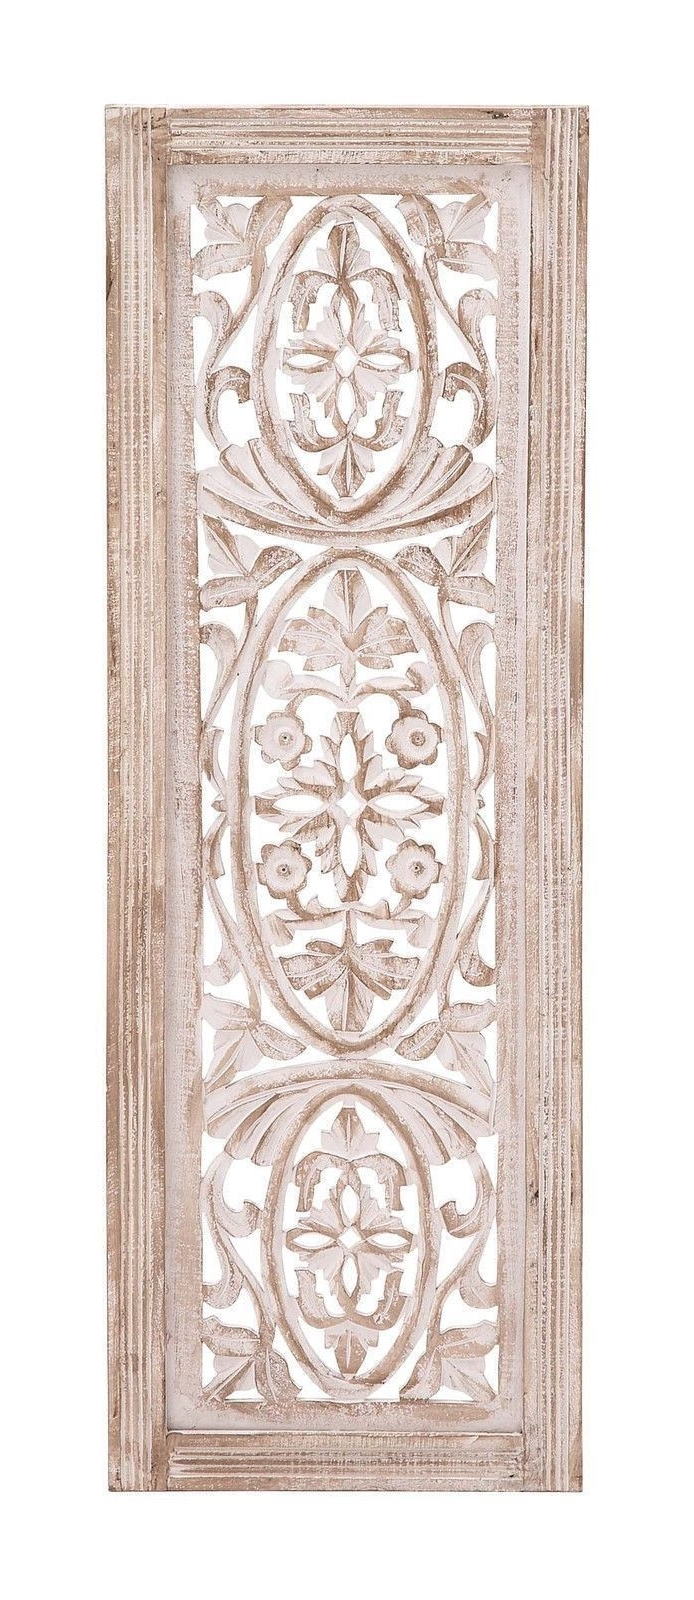 Most Recent White Washed Carved Wood Wall Art Panel Shabby Country Cottage Chic With Regard To Carved Wood Wall Art (View 10 of 15)